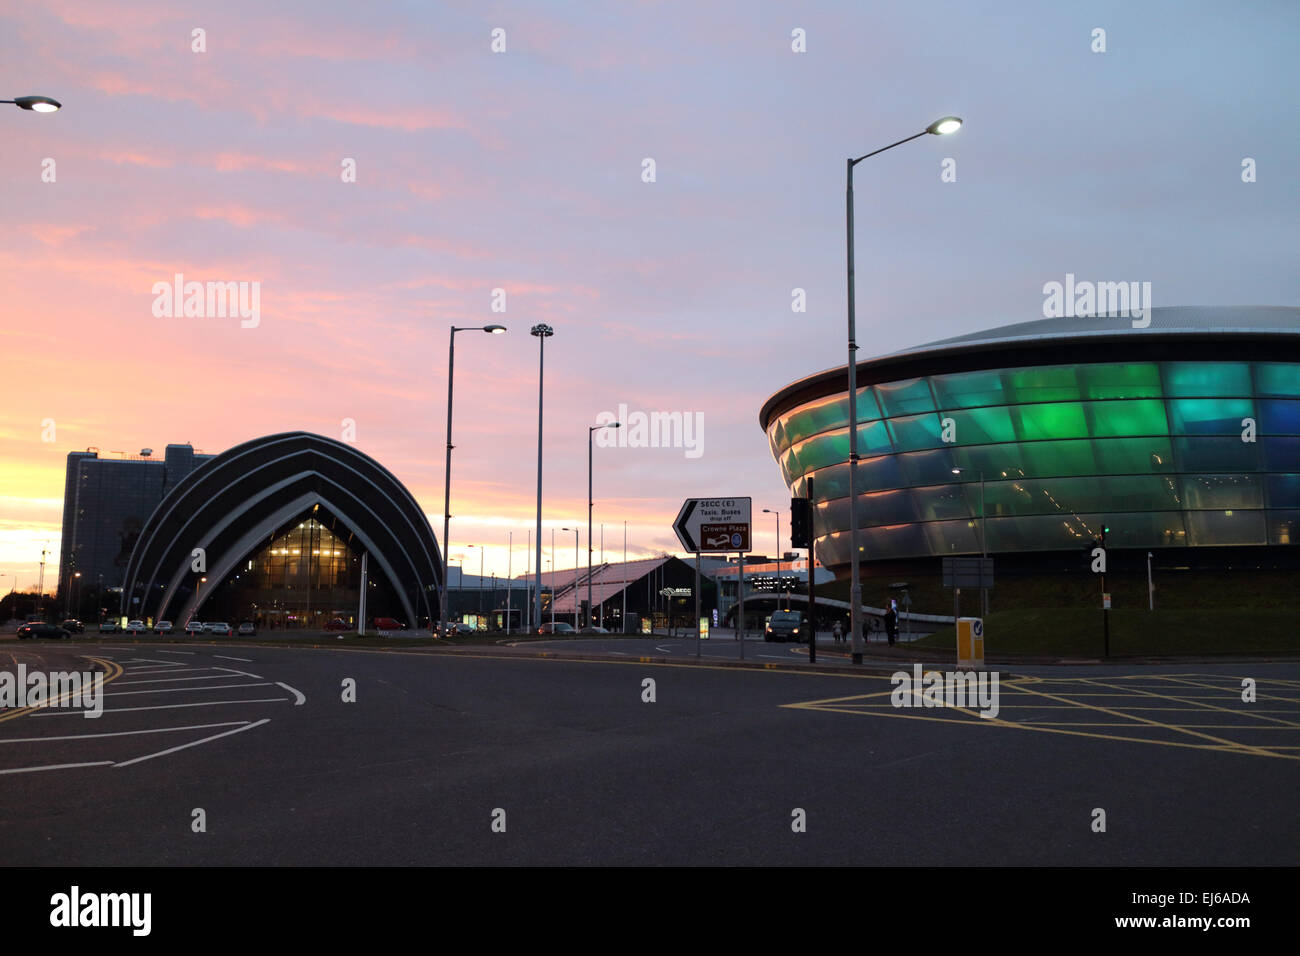 clyde auditorium and sse hydro arena at the secc scottish exhibition and conference centre at dusk Glasgow Scotland - Stock Image